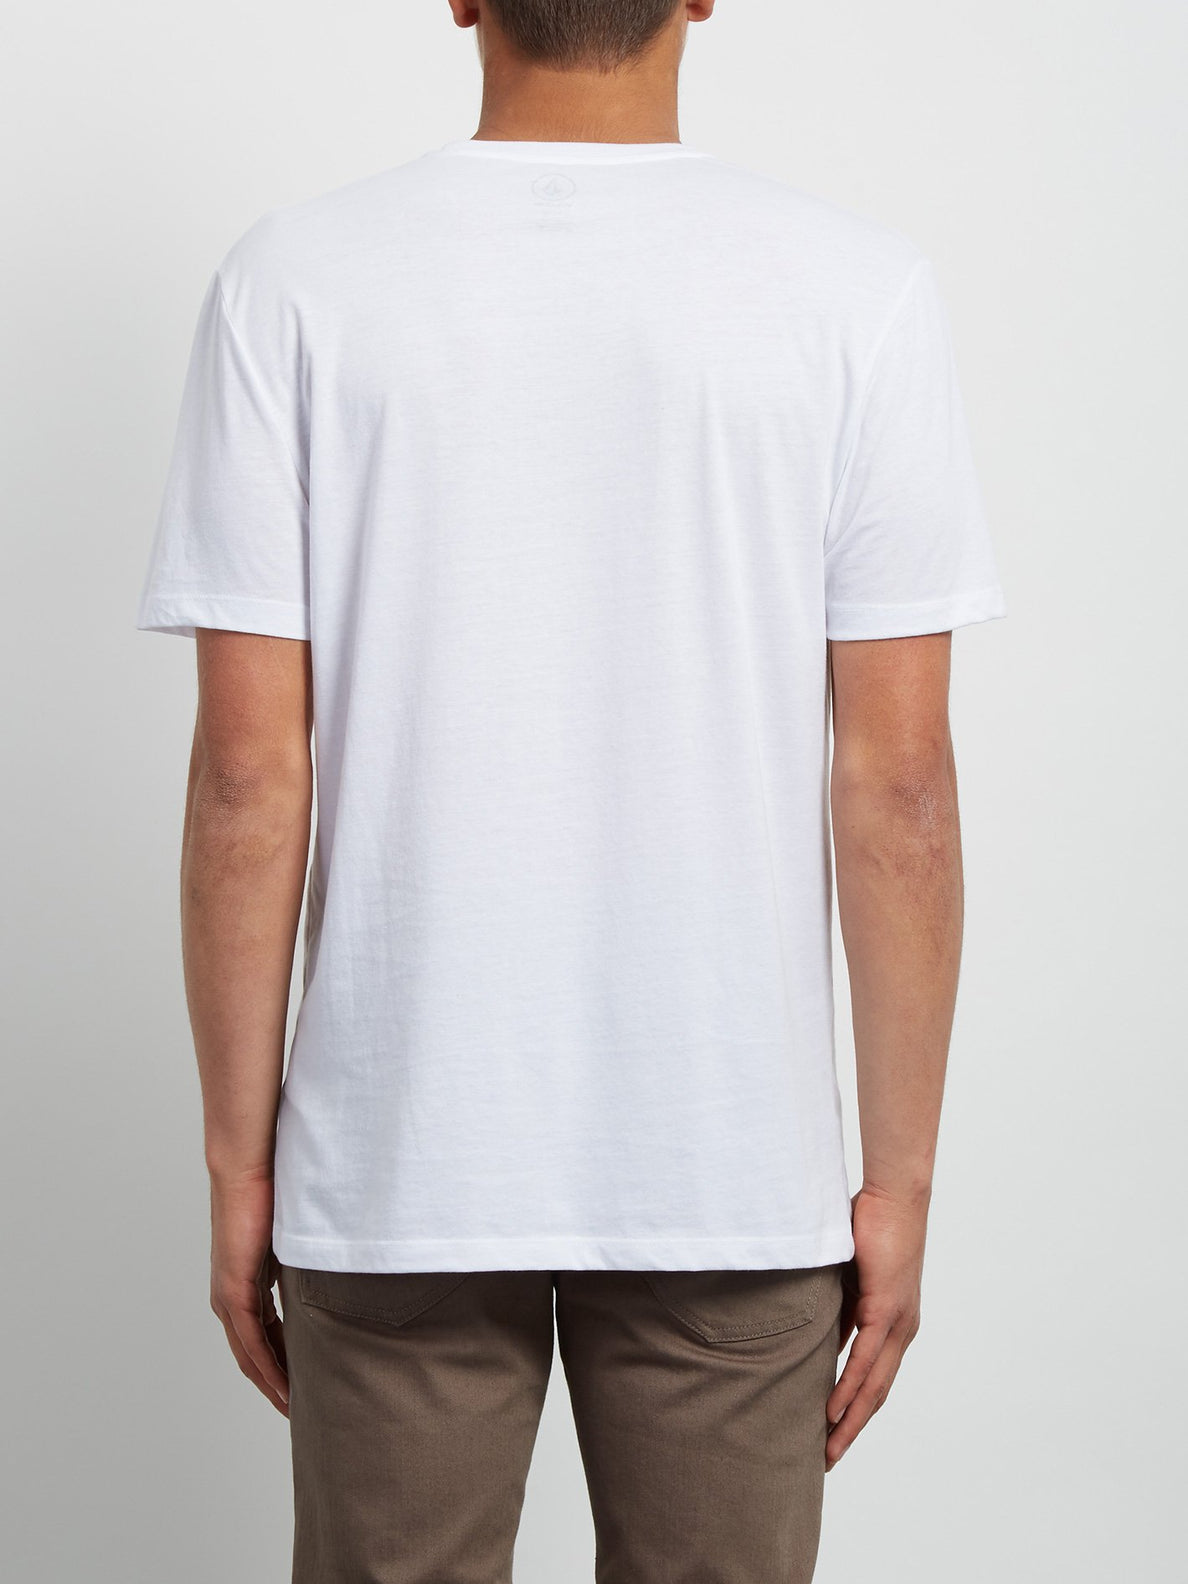 Scribe Tee - White